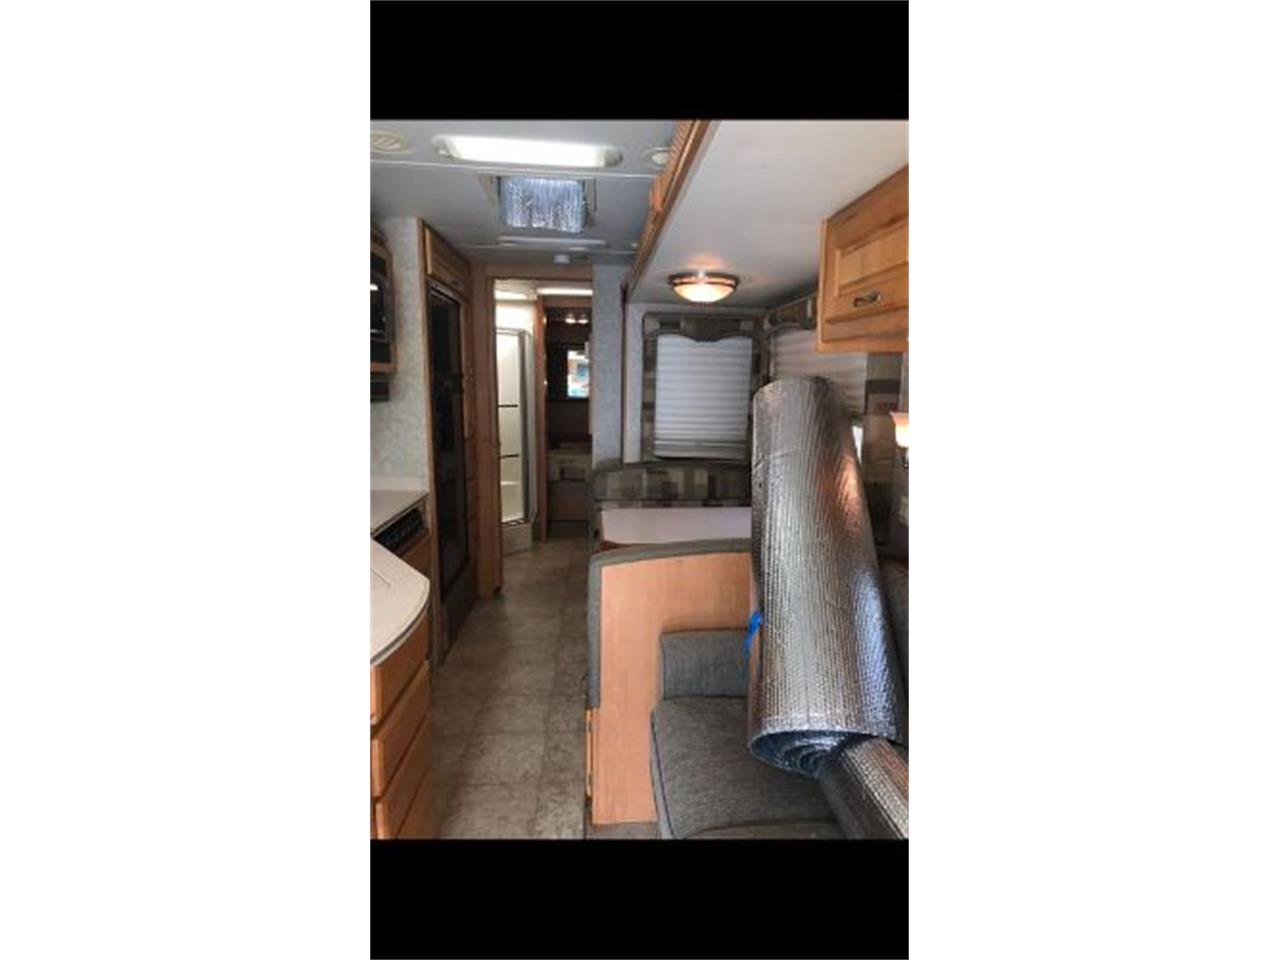 2006 Holiday Rambler Recreational Vehicle for sale in Cadillac, MI – photo 9